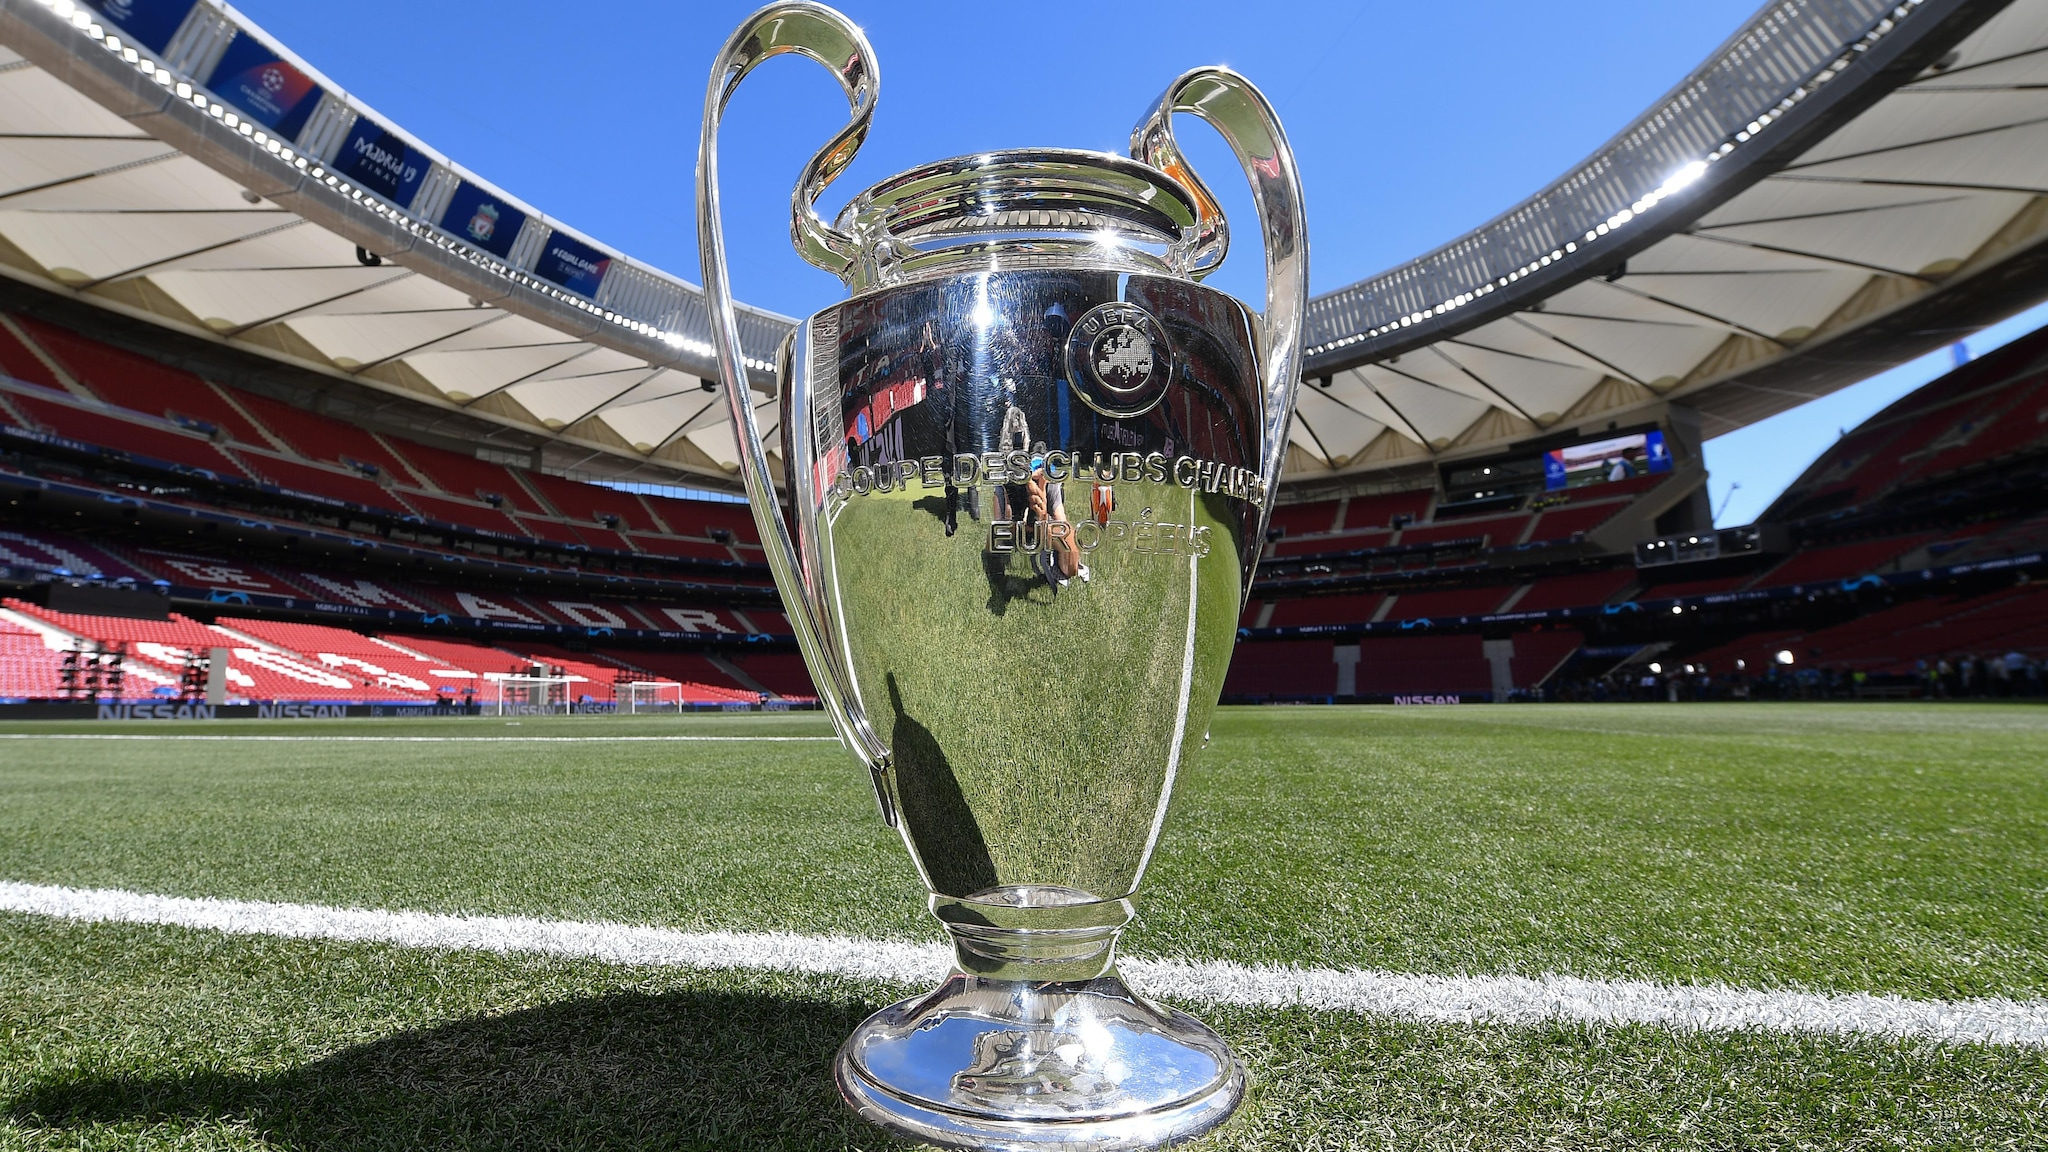 rule changes for this season s champions league uefa champions league uefa com uefa champions league